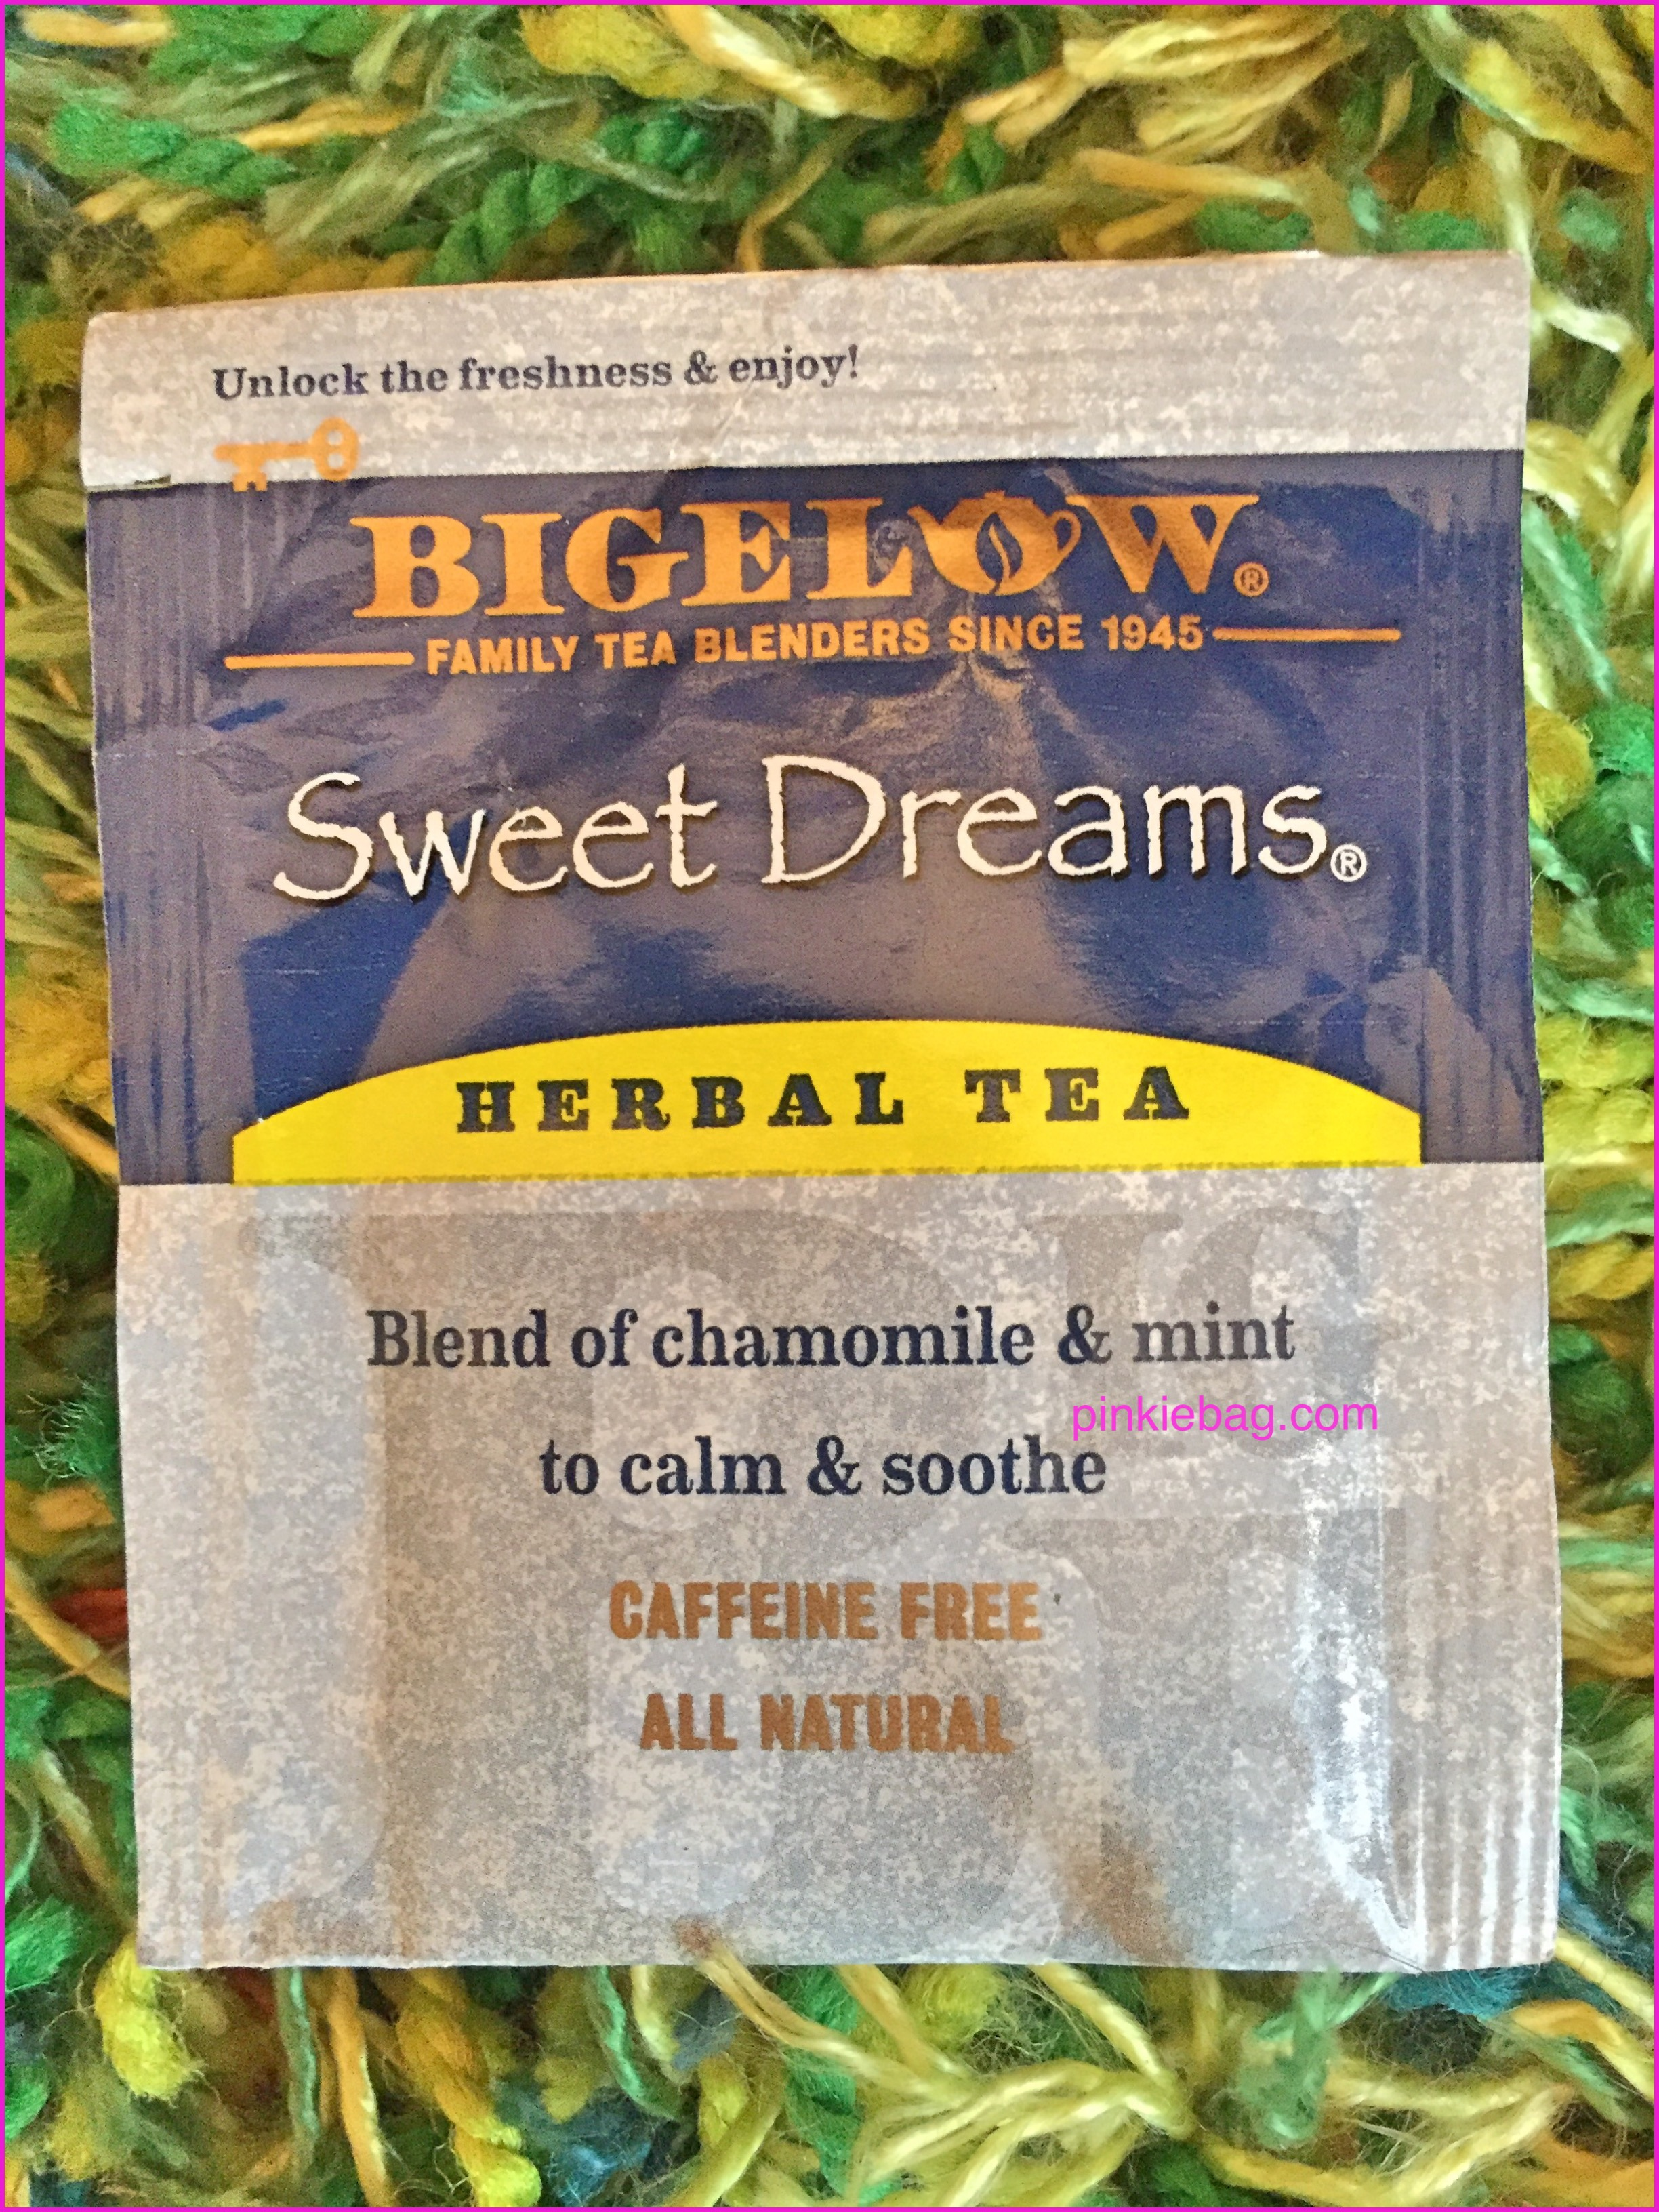 Bigelow herbal tea - Now Onto The Tea Itself I Liked The Simplicity Of The Packaging With The Grey Colour With A Dark Blue Strip Scheme To The Top With Sweet Dreams To The